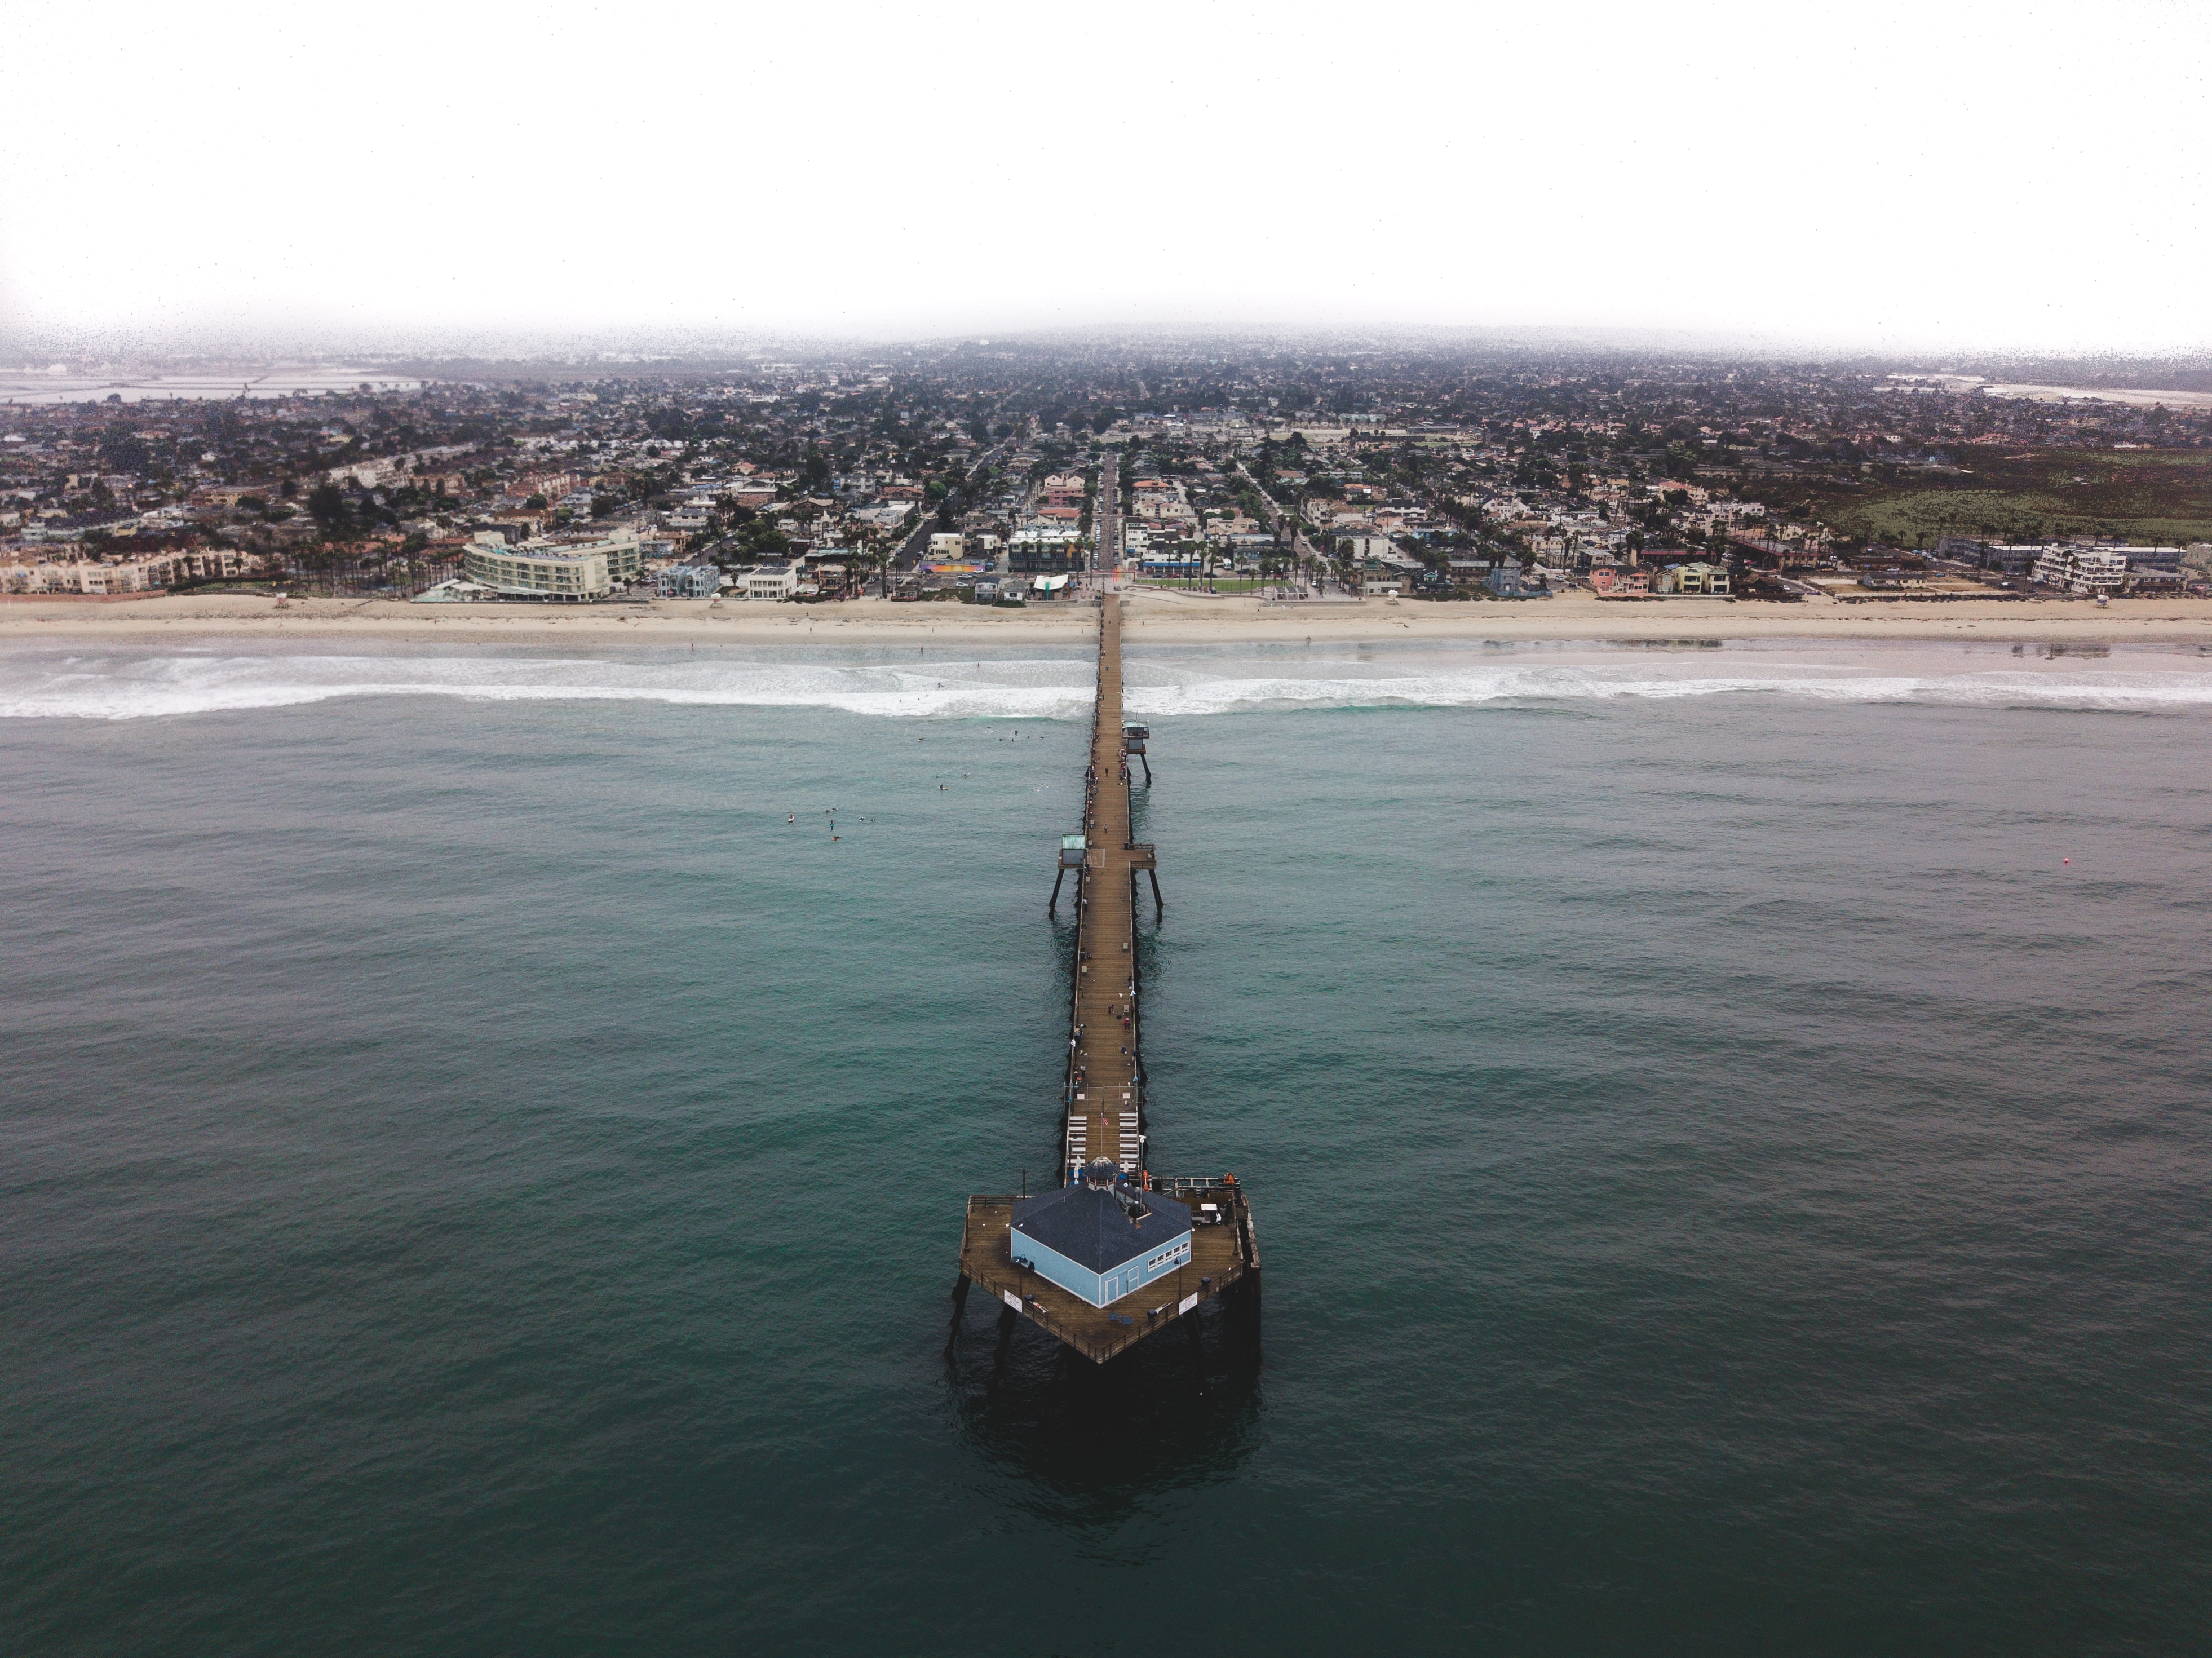 Drone view of a long pier at the Imperial Beach coastline